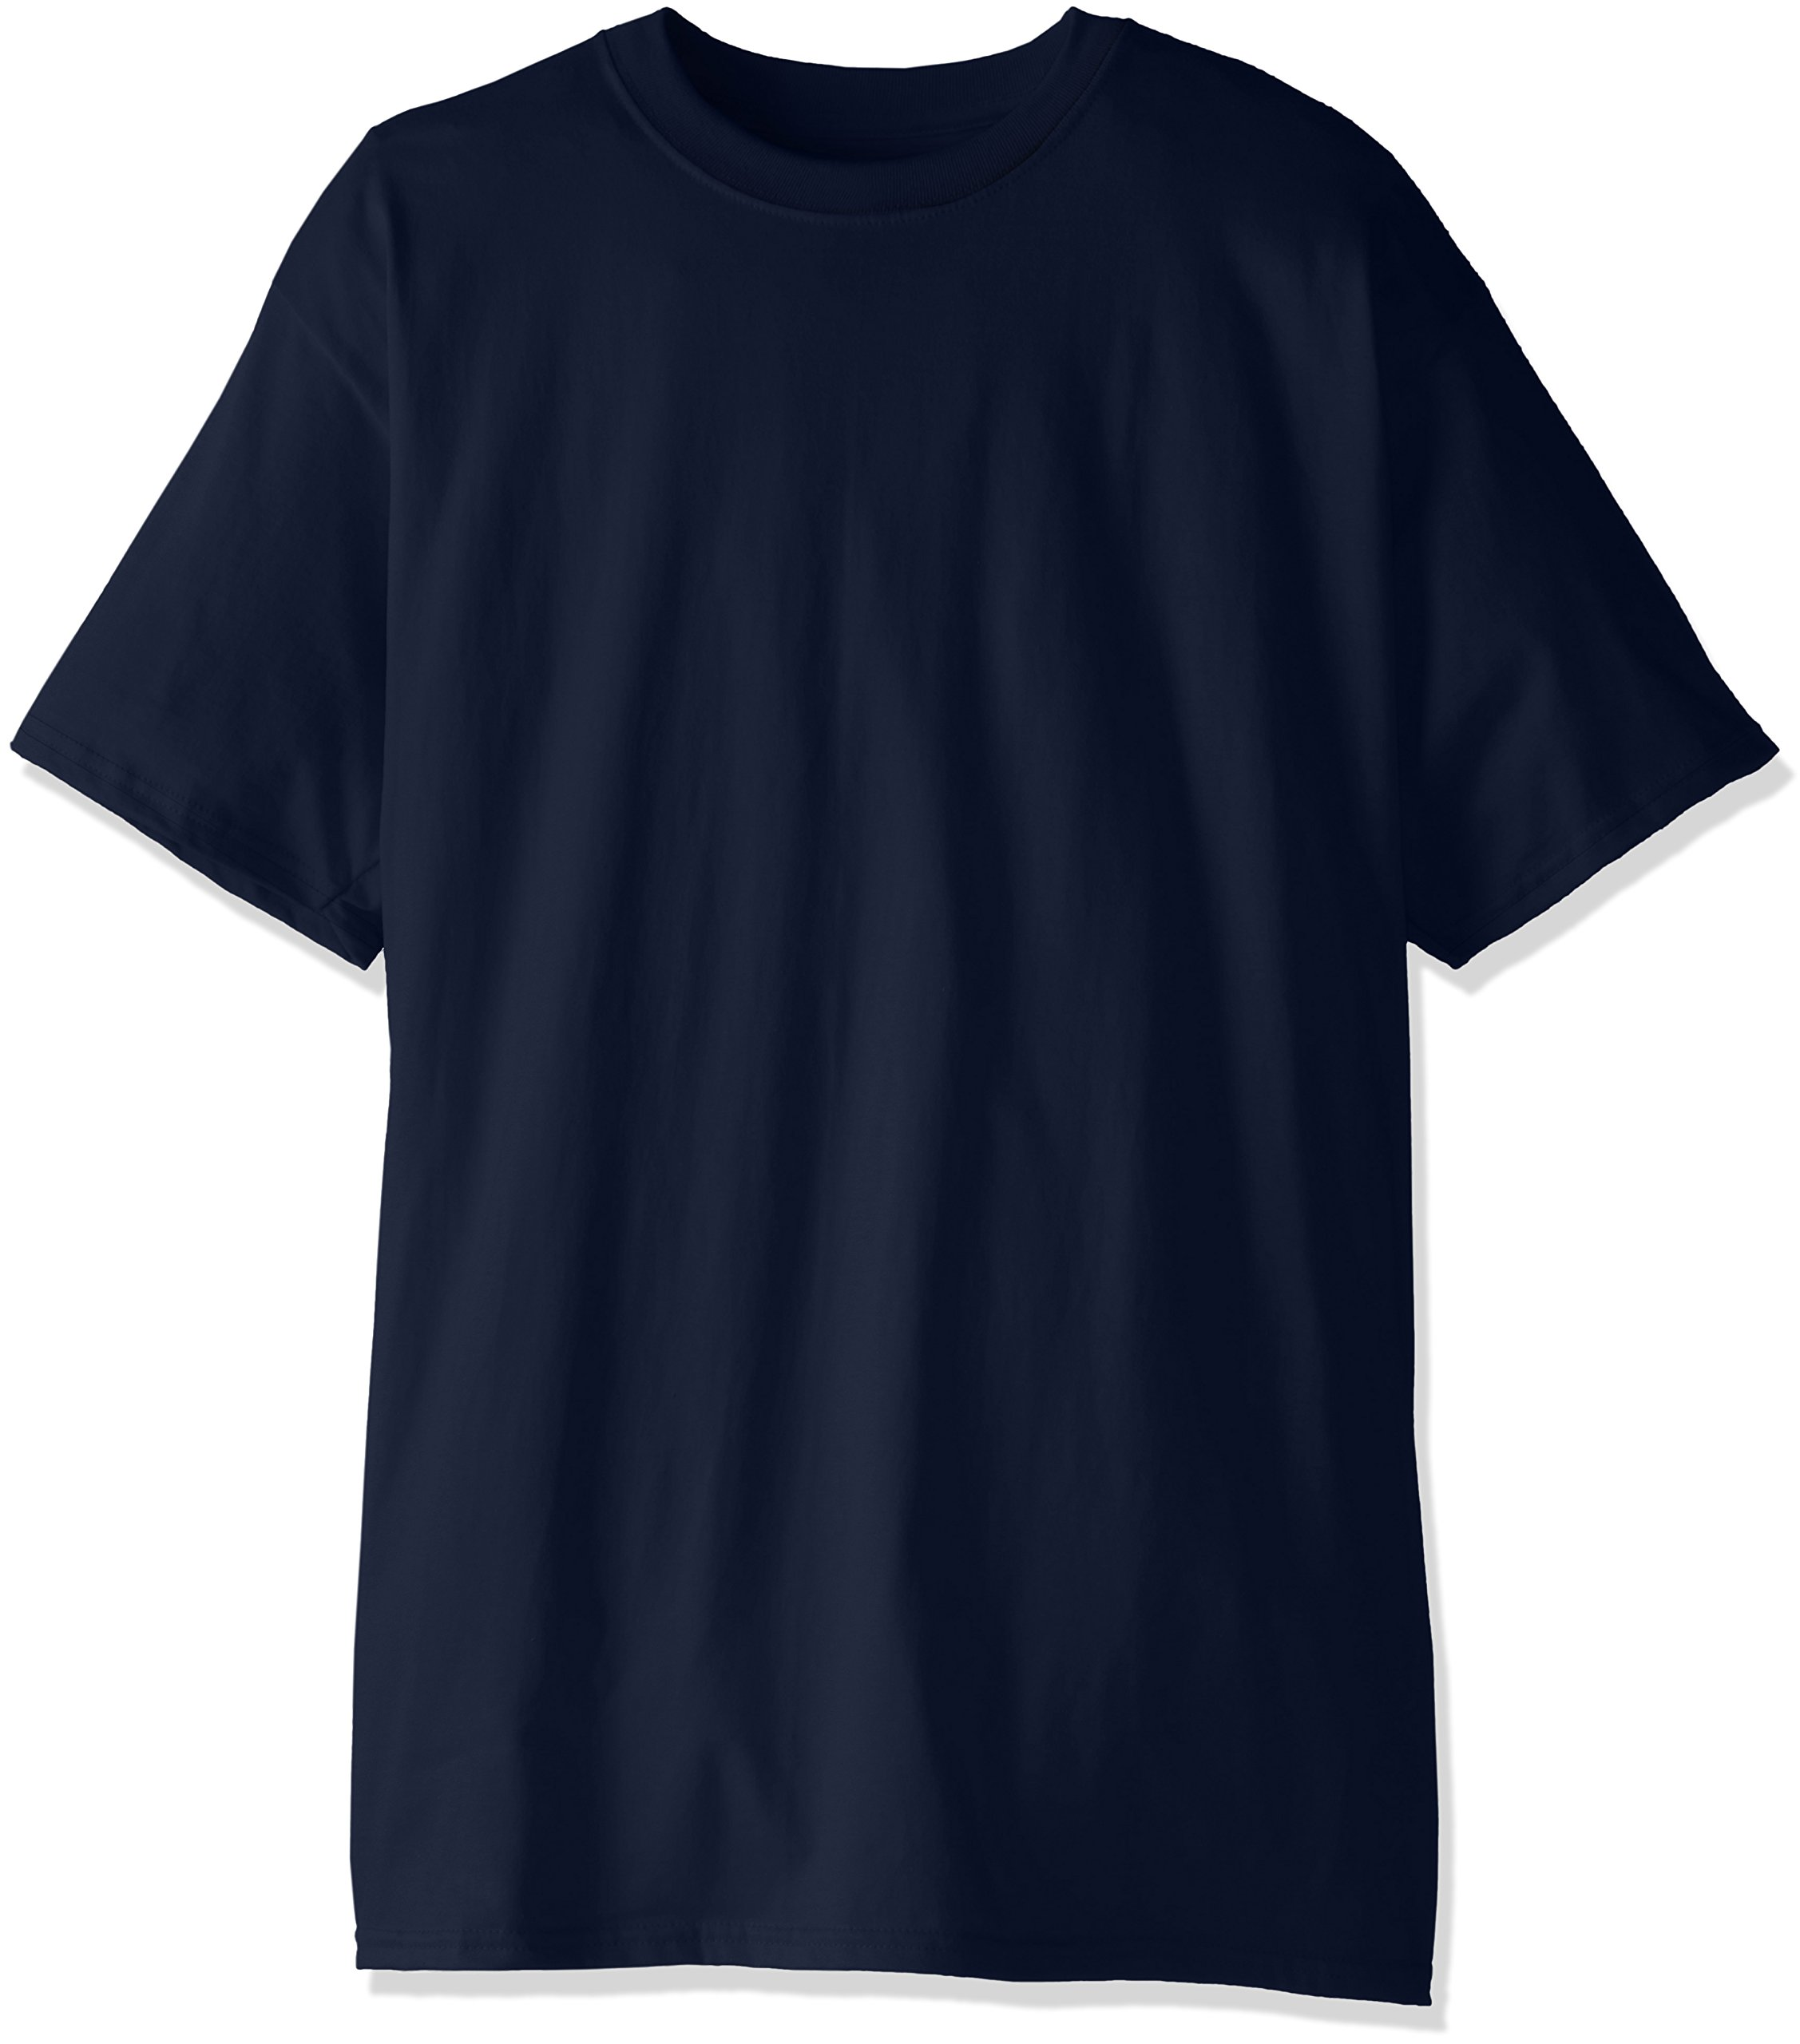 Hanes Men's Tall Short Sleeve Beefy-T, Navy, X-Large/Tall (Pack of 2)